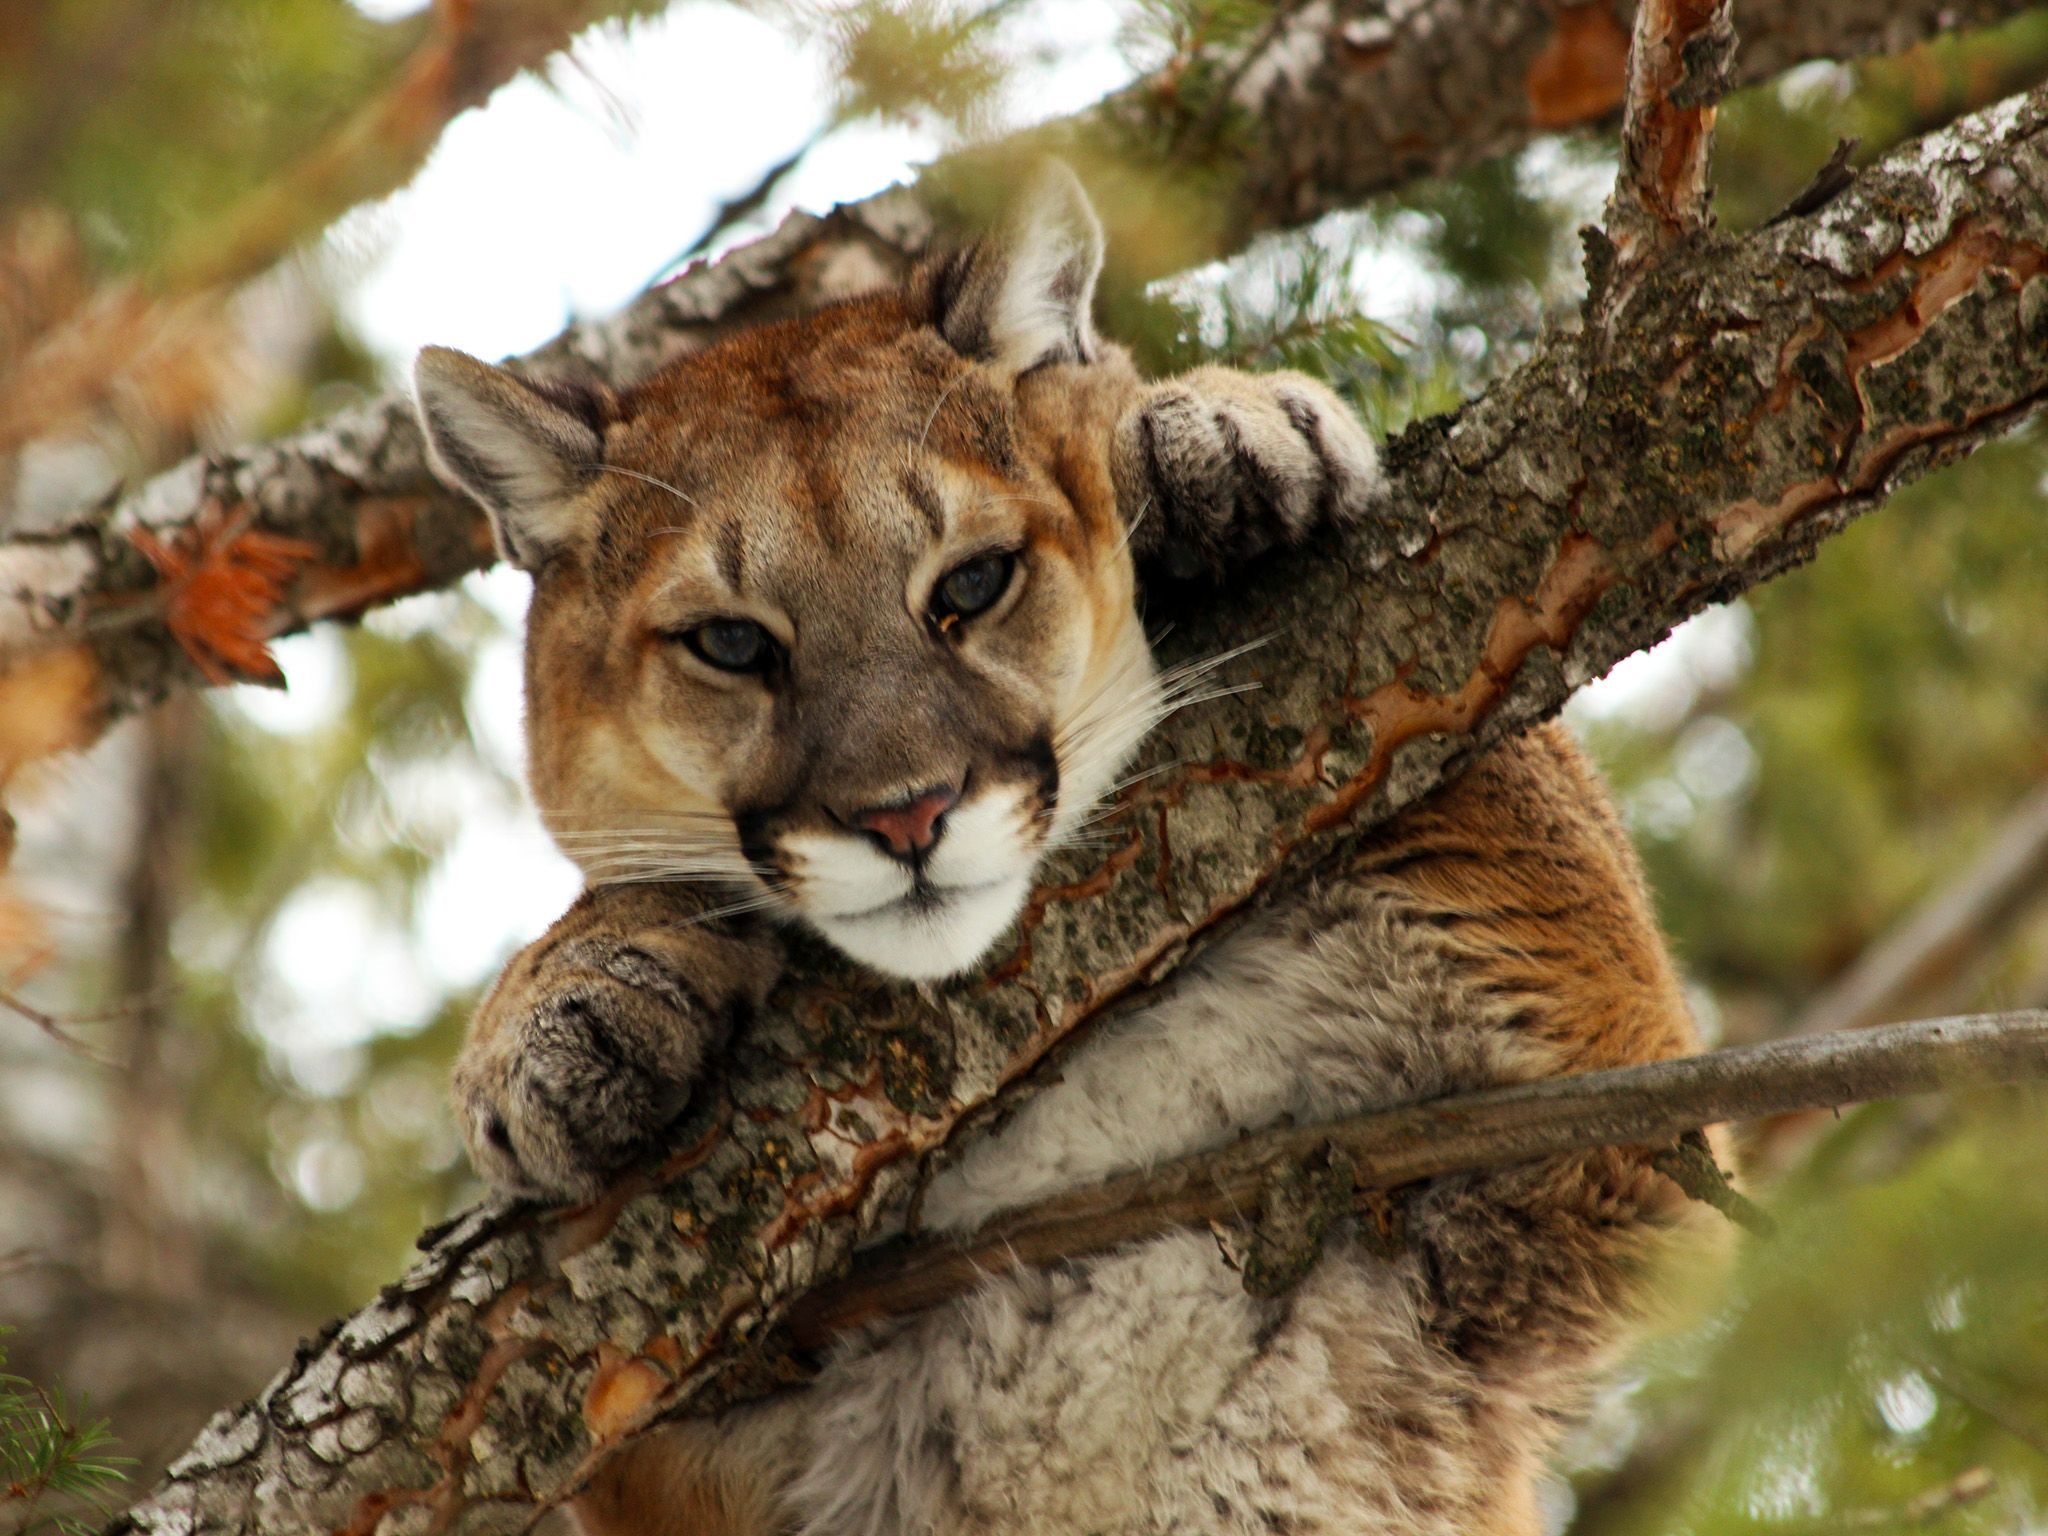 Preston, ID, USA: A mountain lion sits in the high branches of a tree and stares at the camera.... [Photo of the day - December 2014]